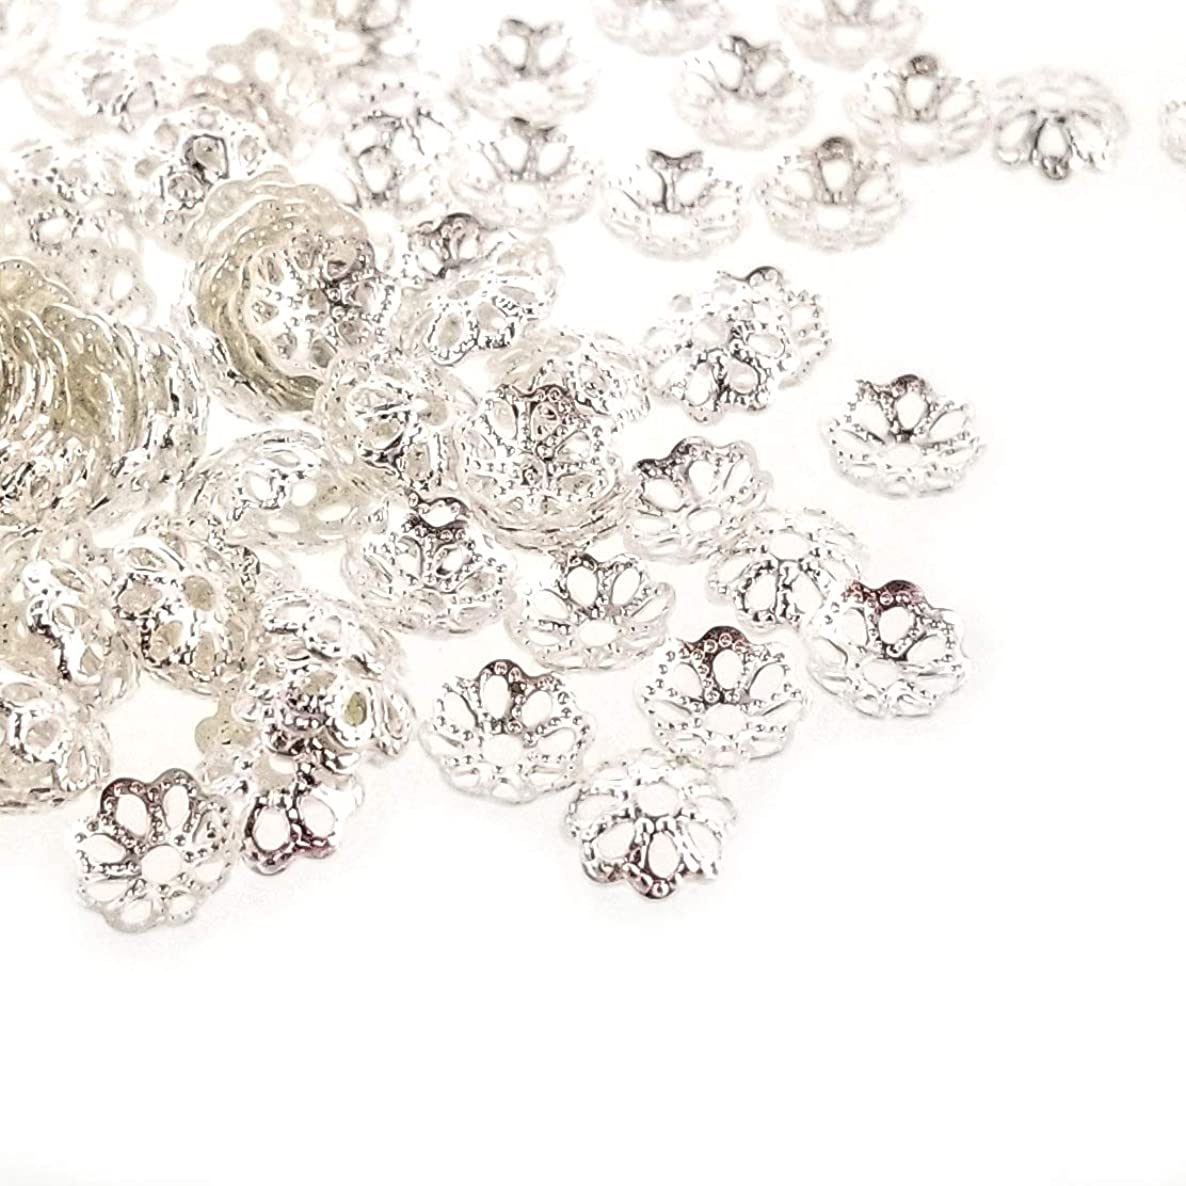 Silver Plated Brass Small Filigree Flower Bead Caps Spacers for Jewelry Making (6mm)